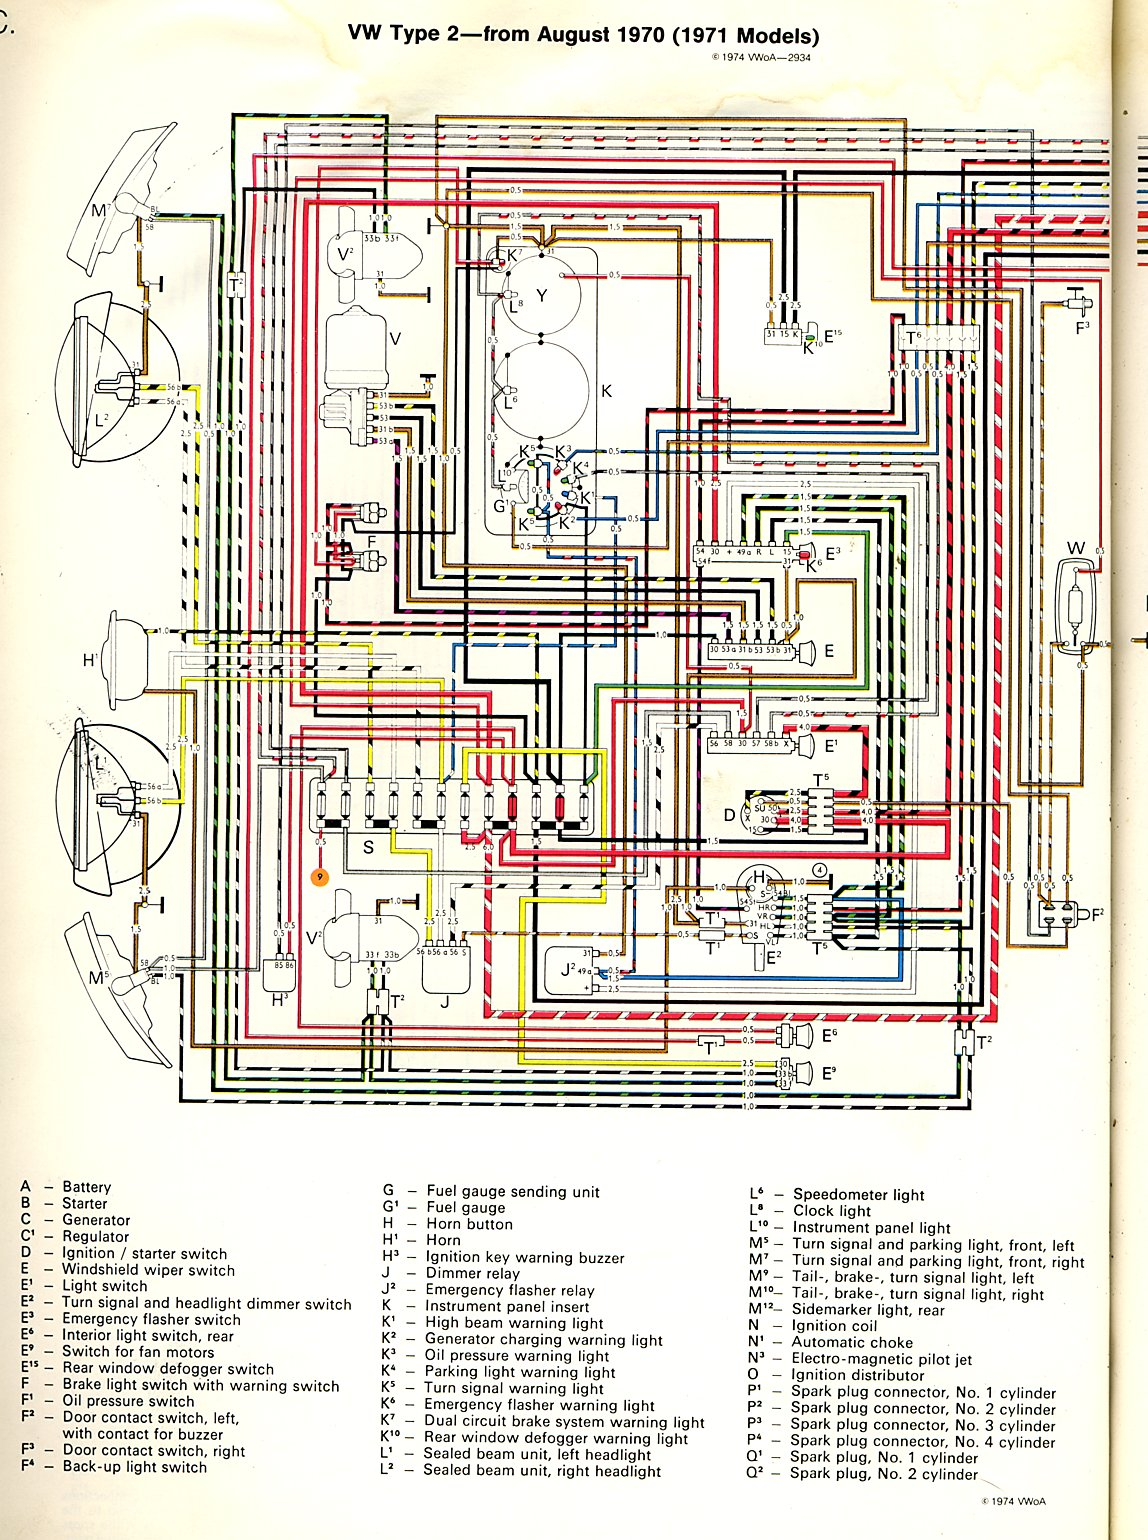 1994 Thunderbird Super Coupe Wiring Diagram Schematic Books Of 1971 Vw Beetle Another Blog About U2022 Rh Ok2 Infoservice Ru